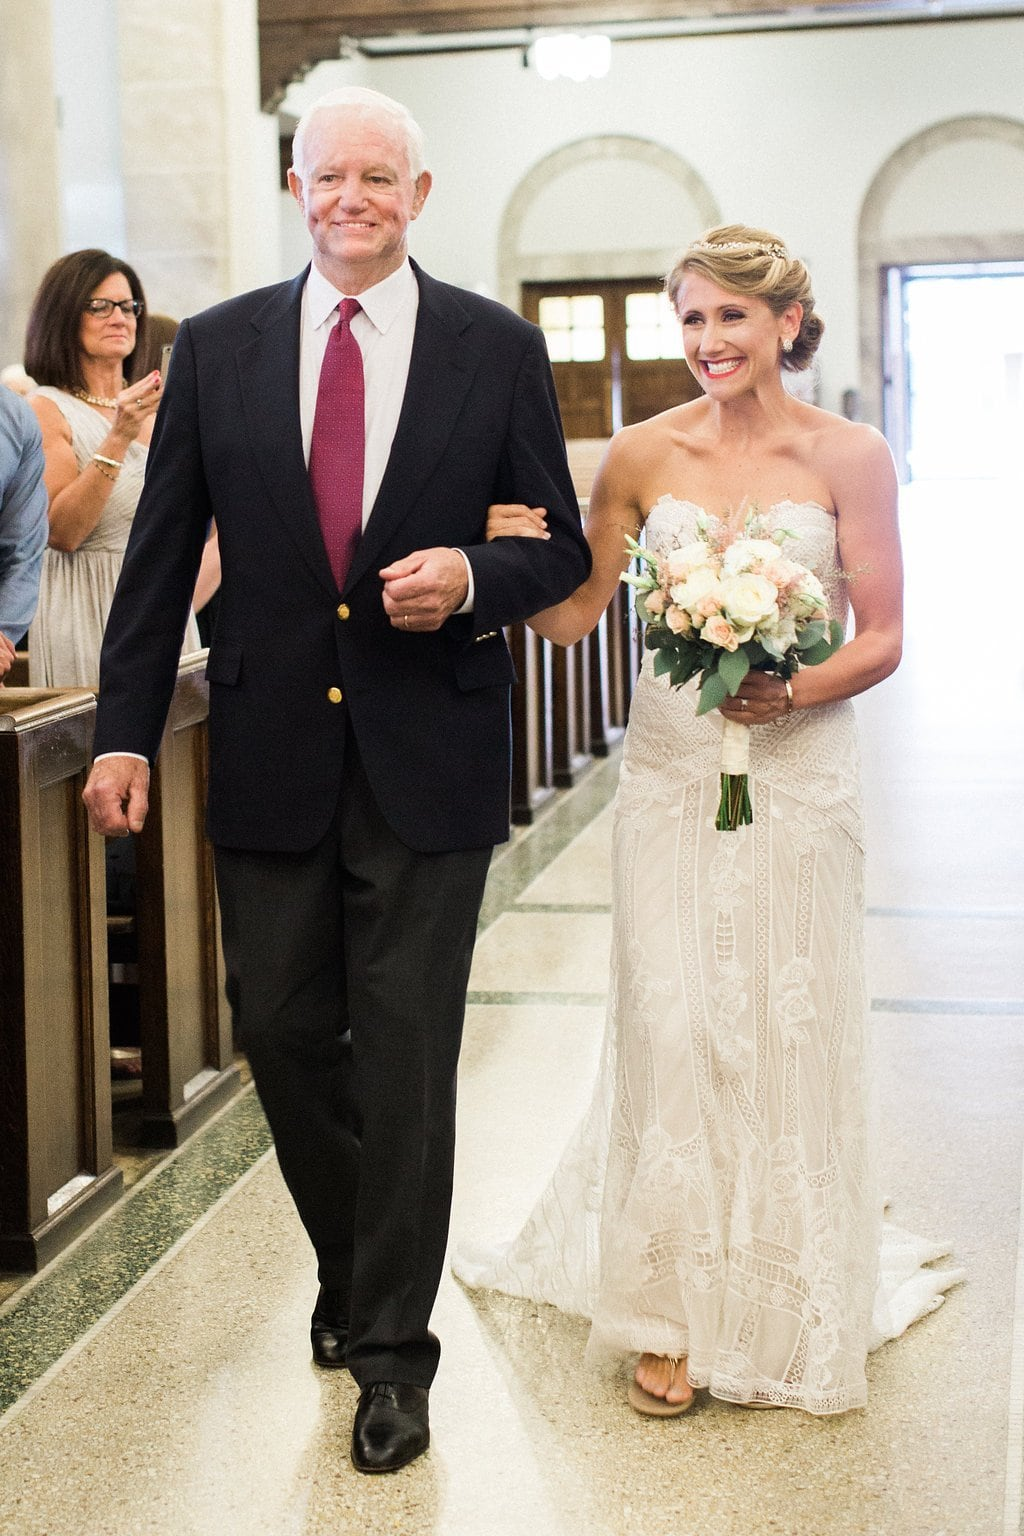 Arthur Thomas walks bride Jeni Stepien down the aisle - 1920's inspired wedding Grand Concourse